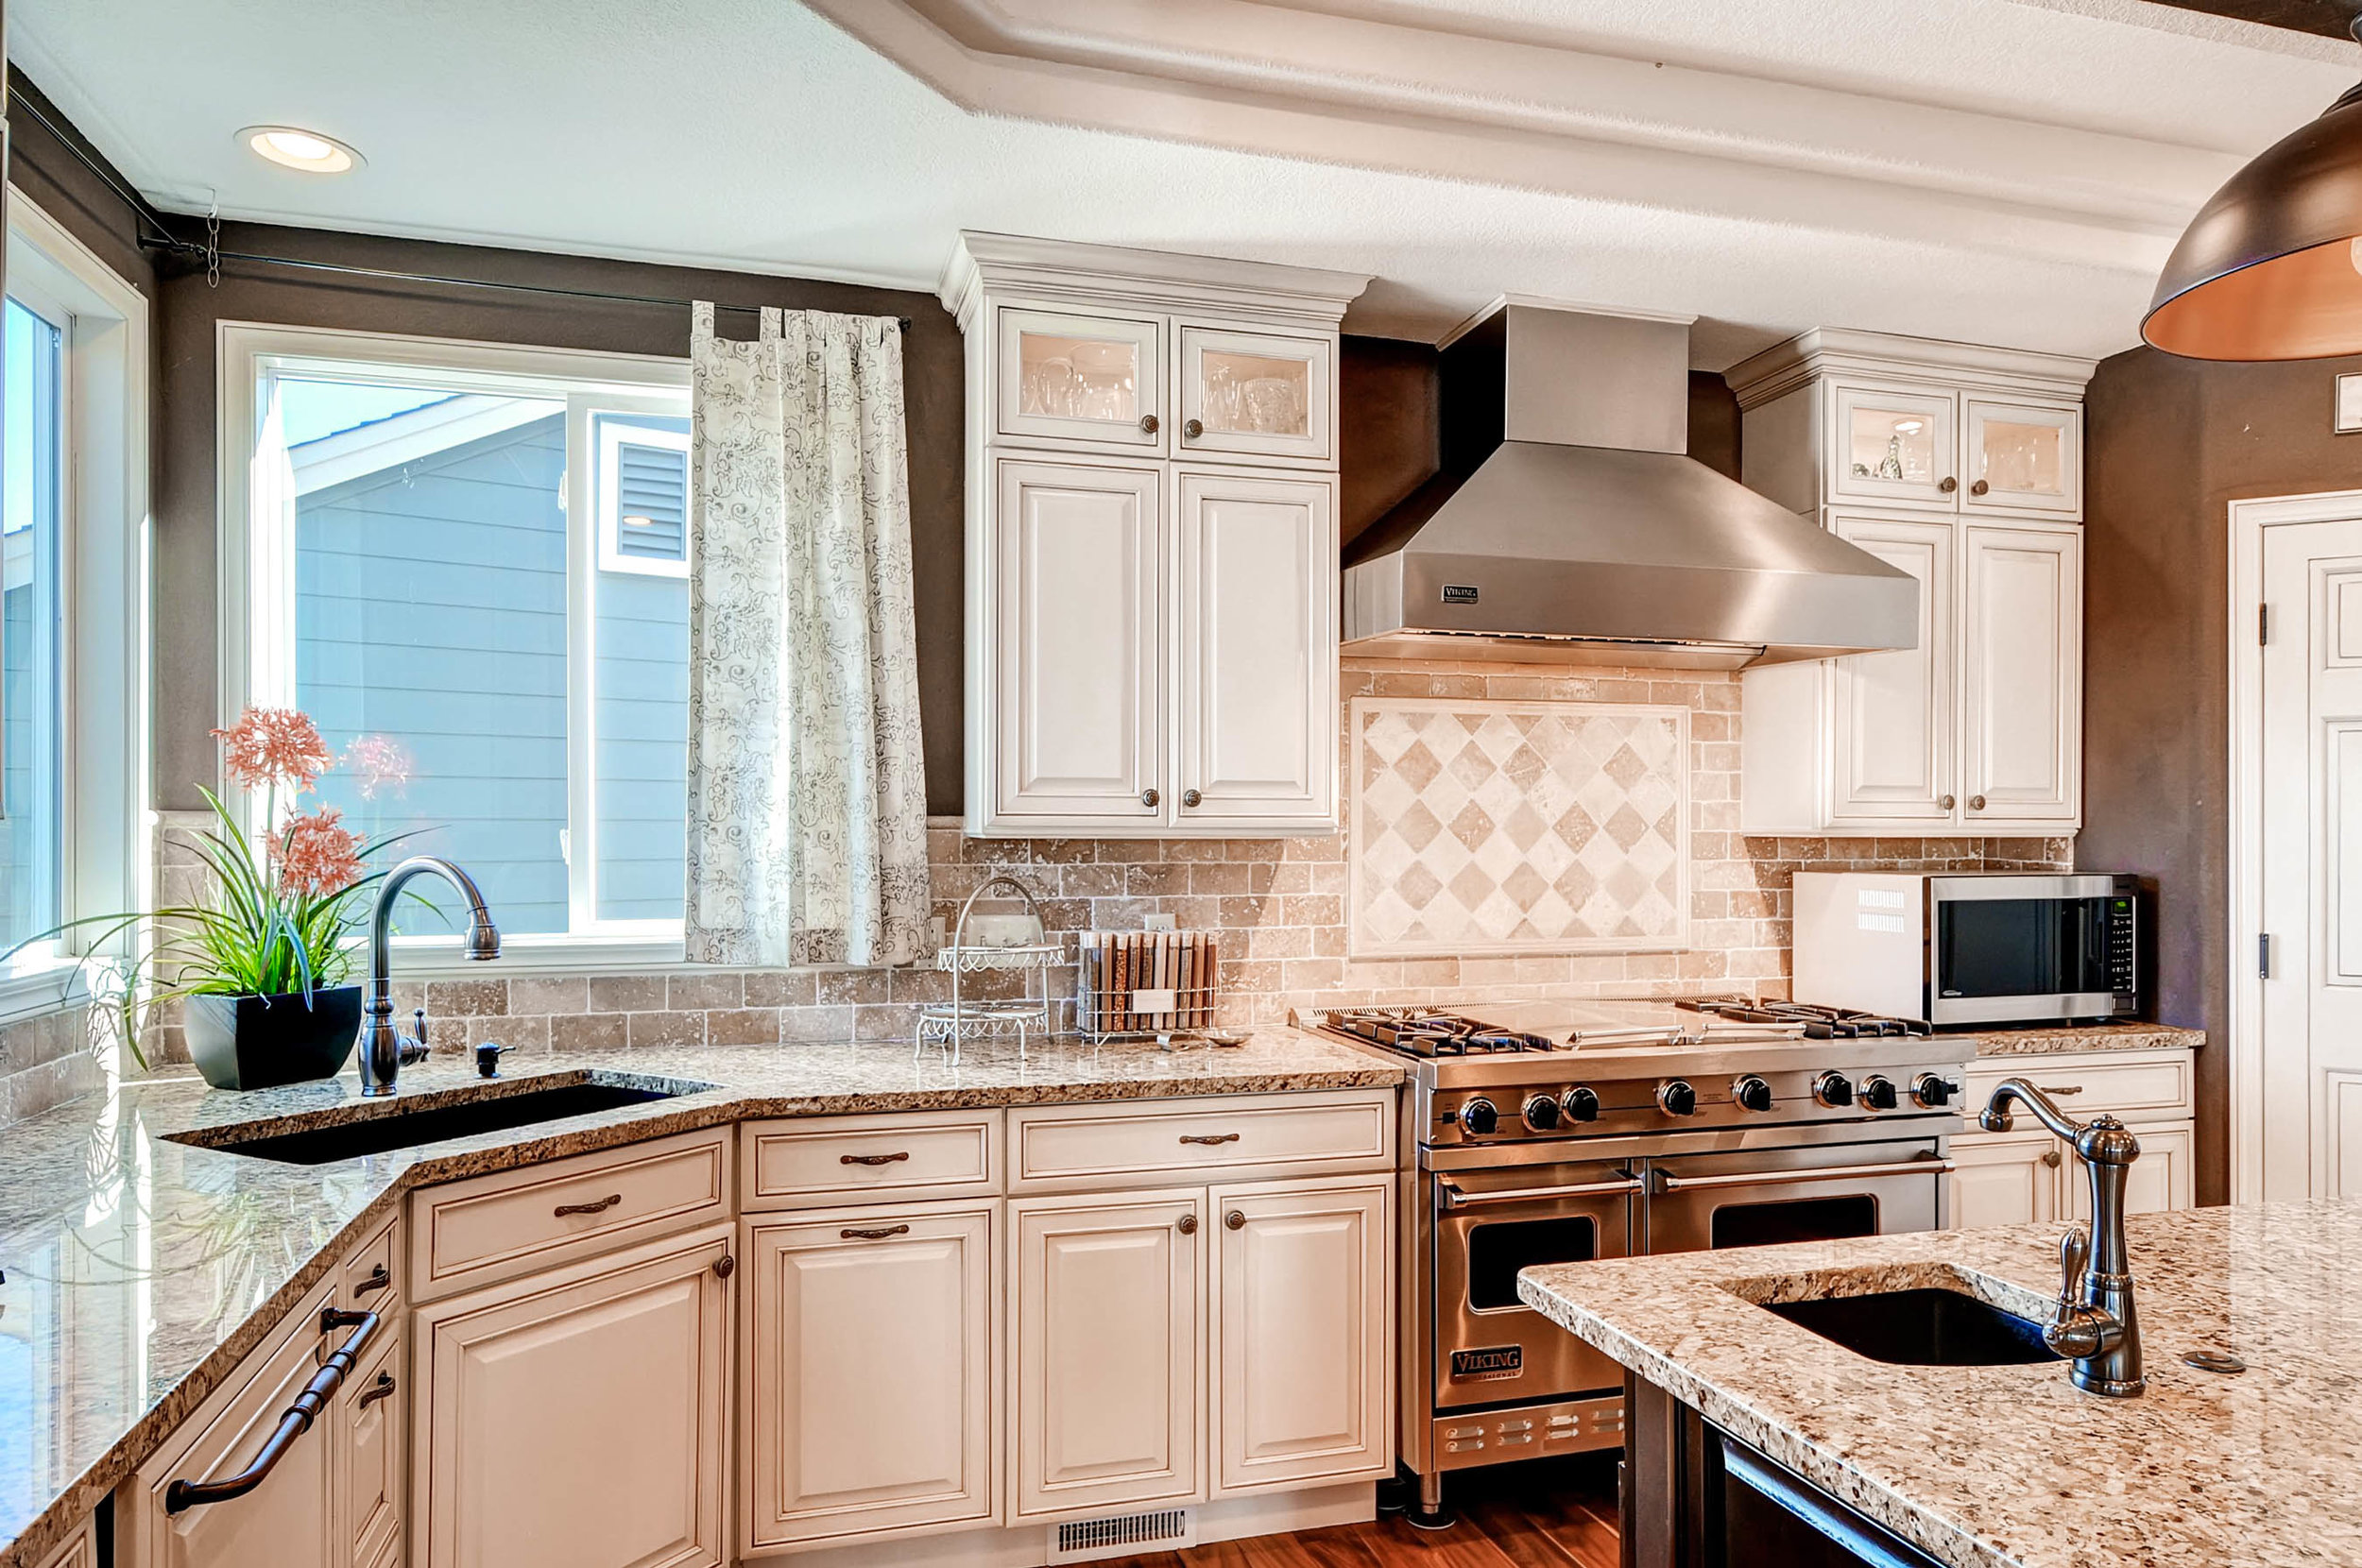 245 West Dr Golden CO 80403-print-007-13-Kitchen-2700x1793-300dpi.jpg